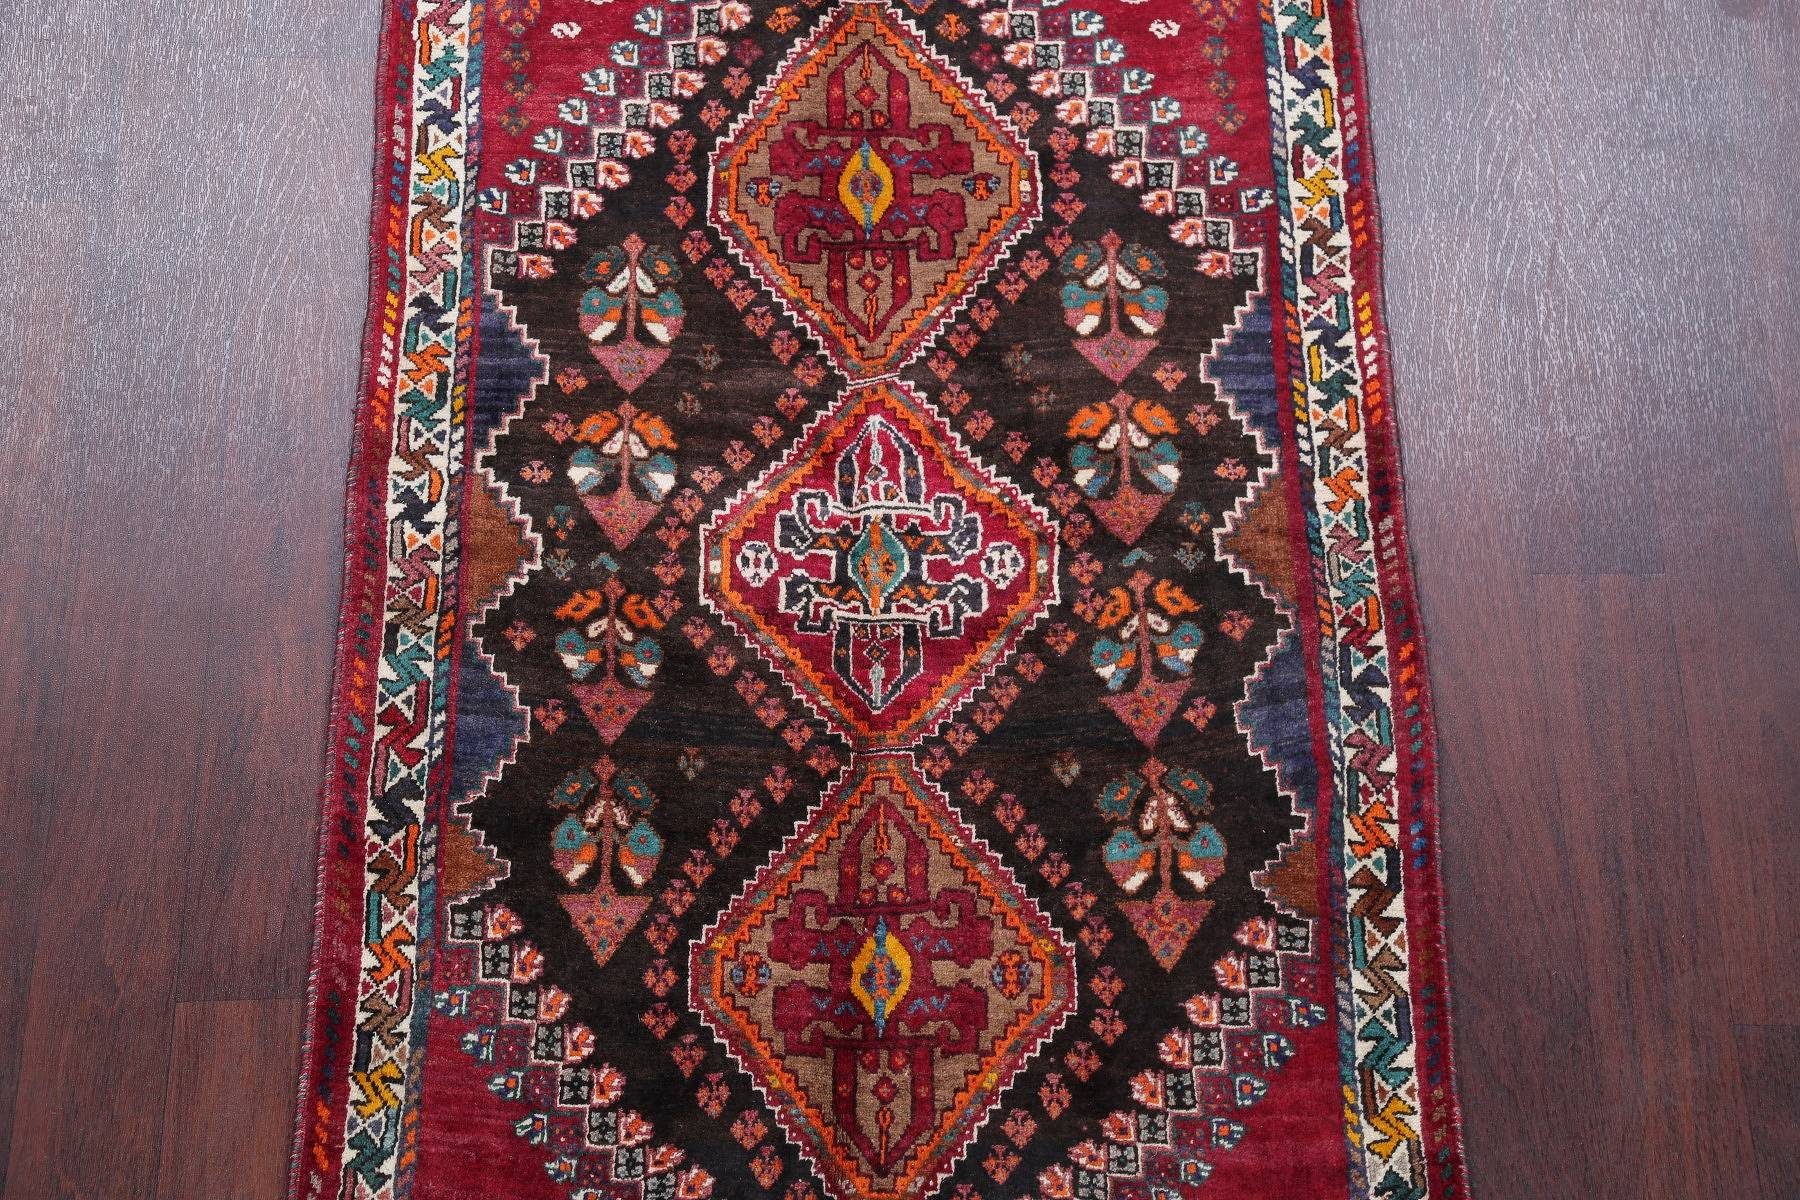 Vintage Geometric Tribal Abadeh Persian Hand-Knotted 3x6 Wool Runner Rug